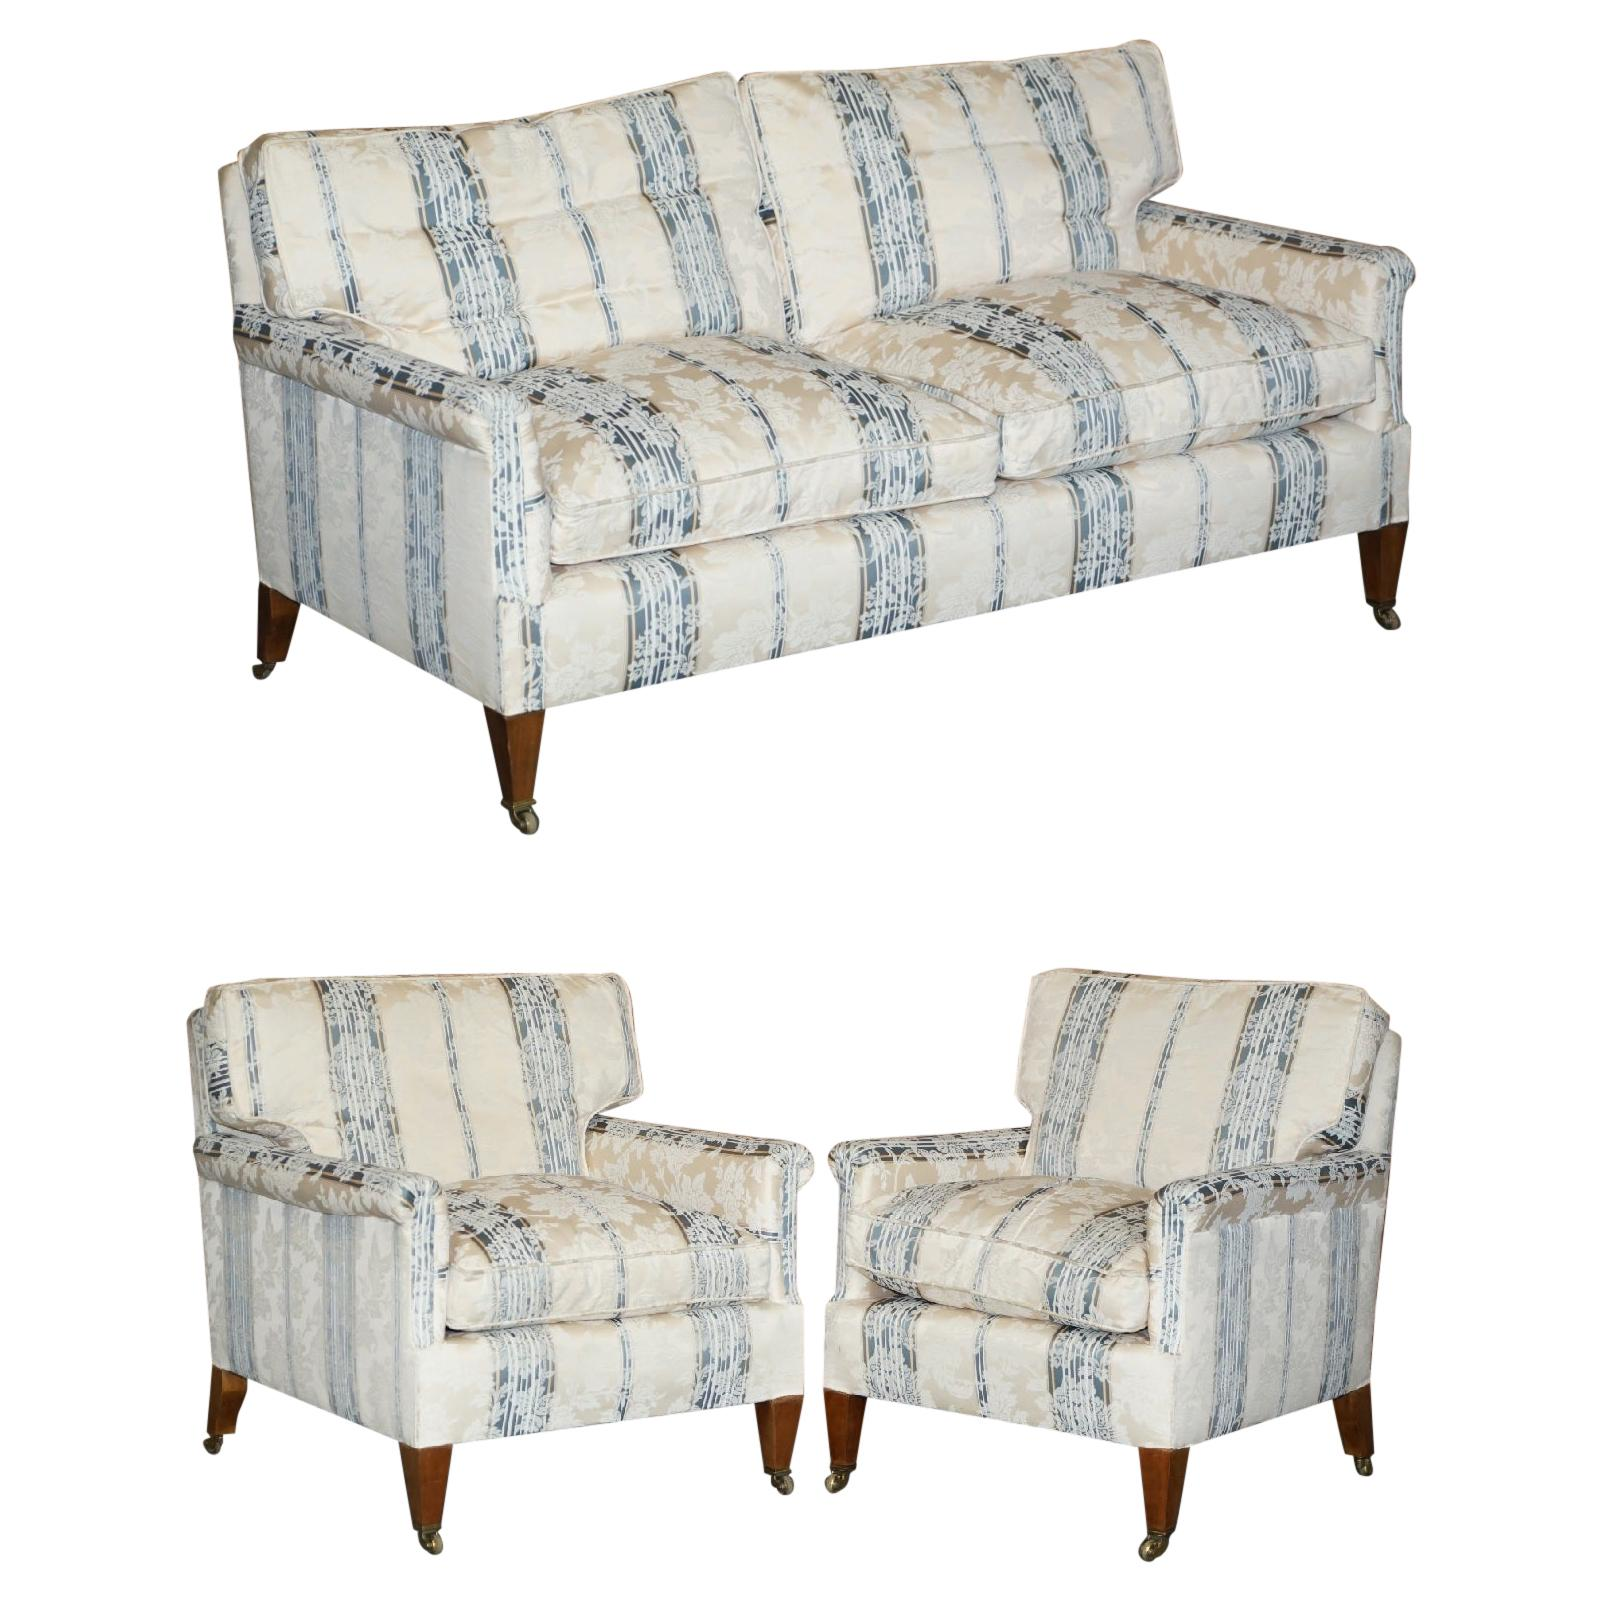 English Country House Fine Three Piece Suite Sofa & Armchairs Feather Cushions